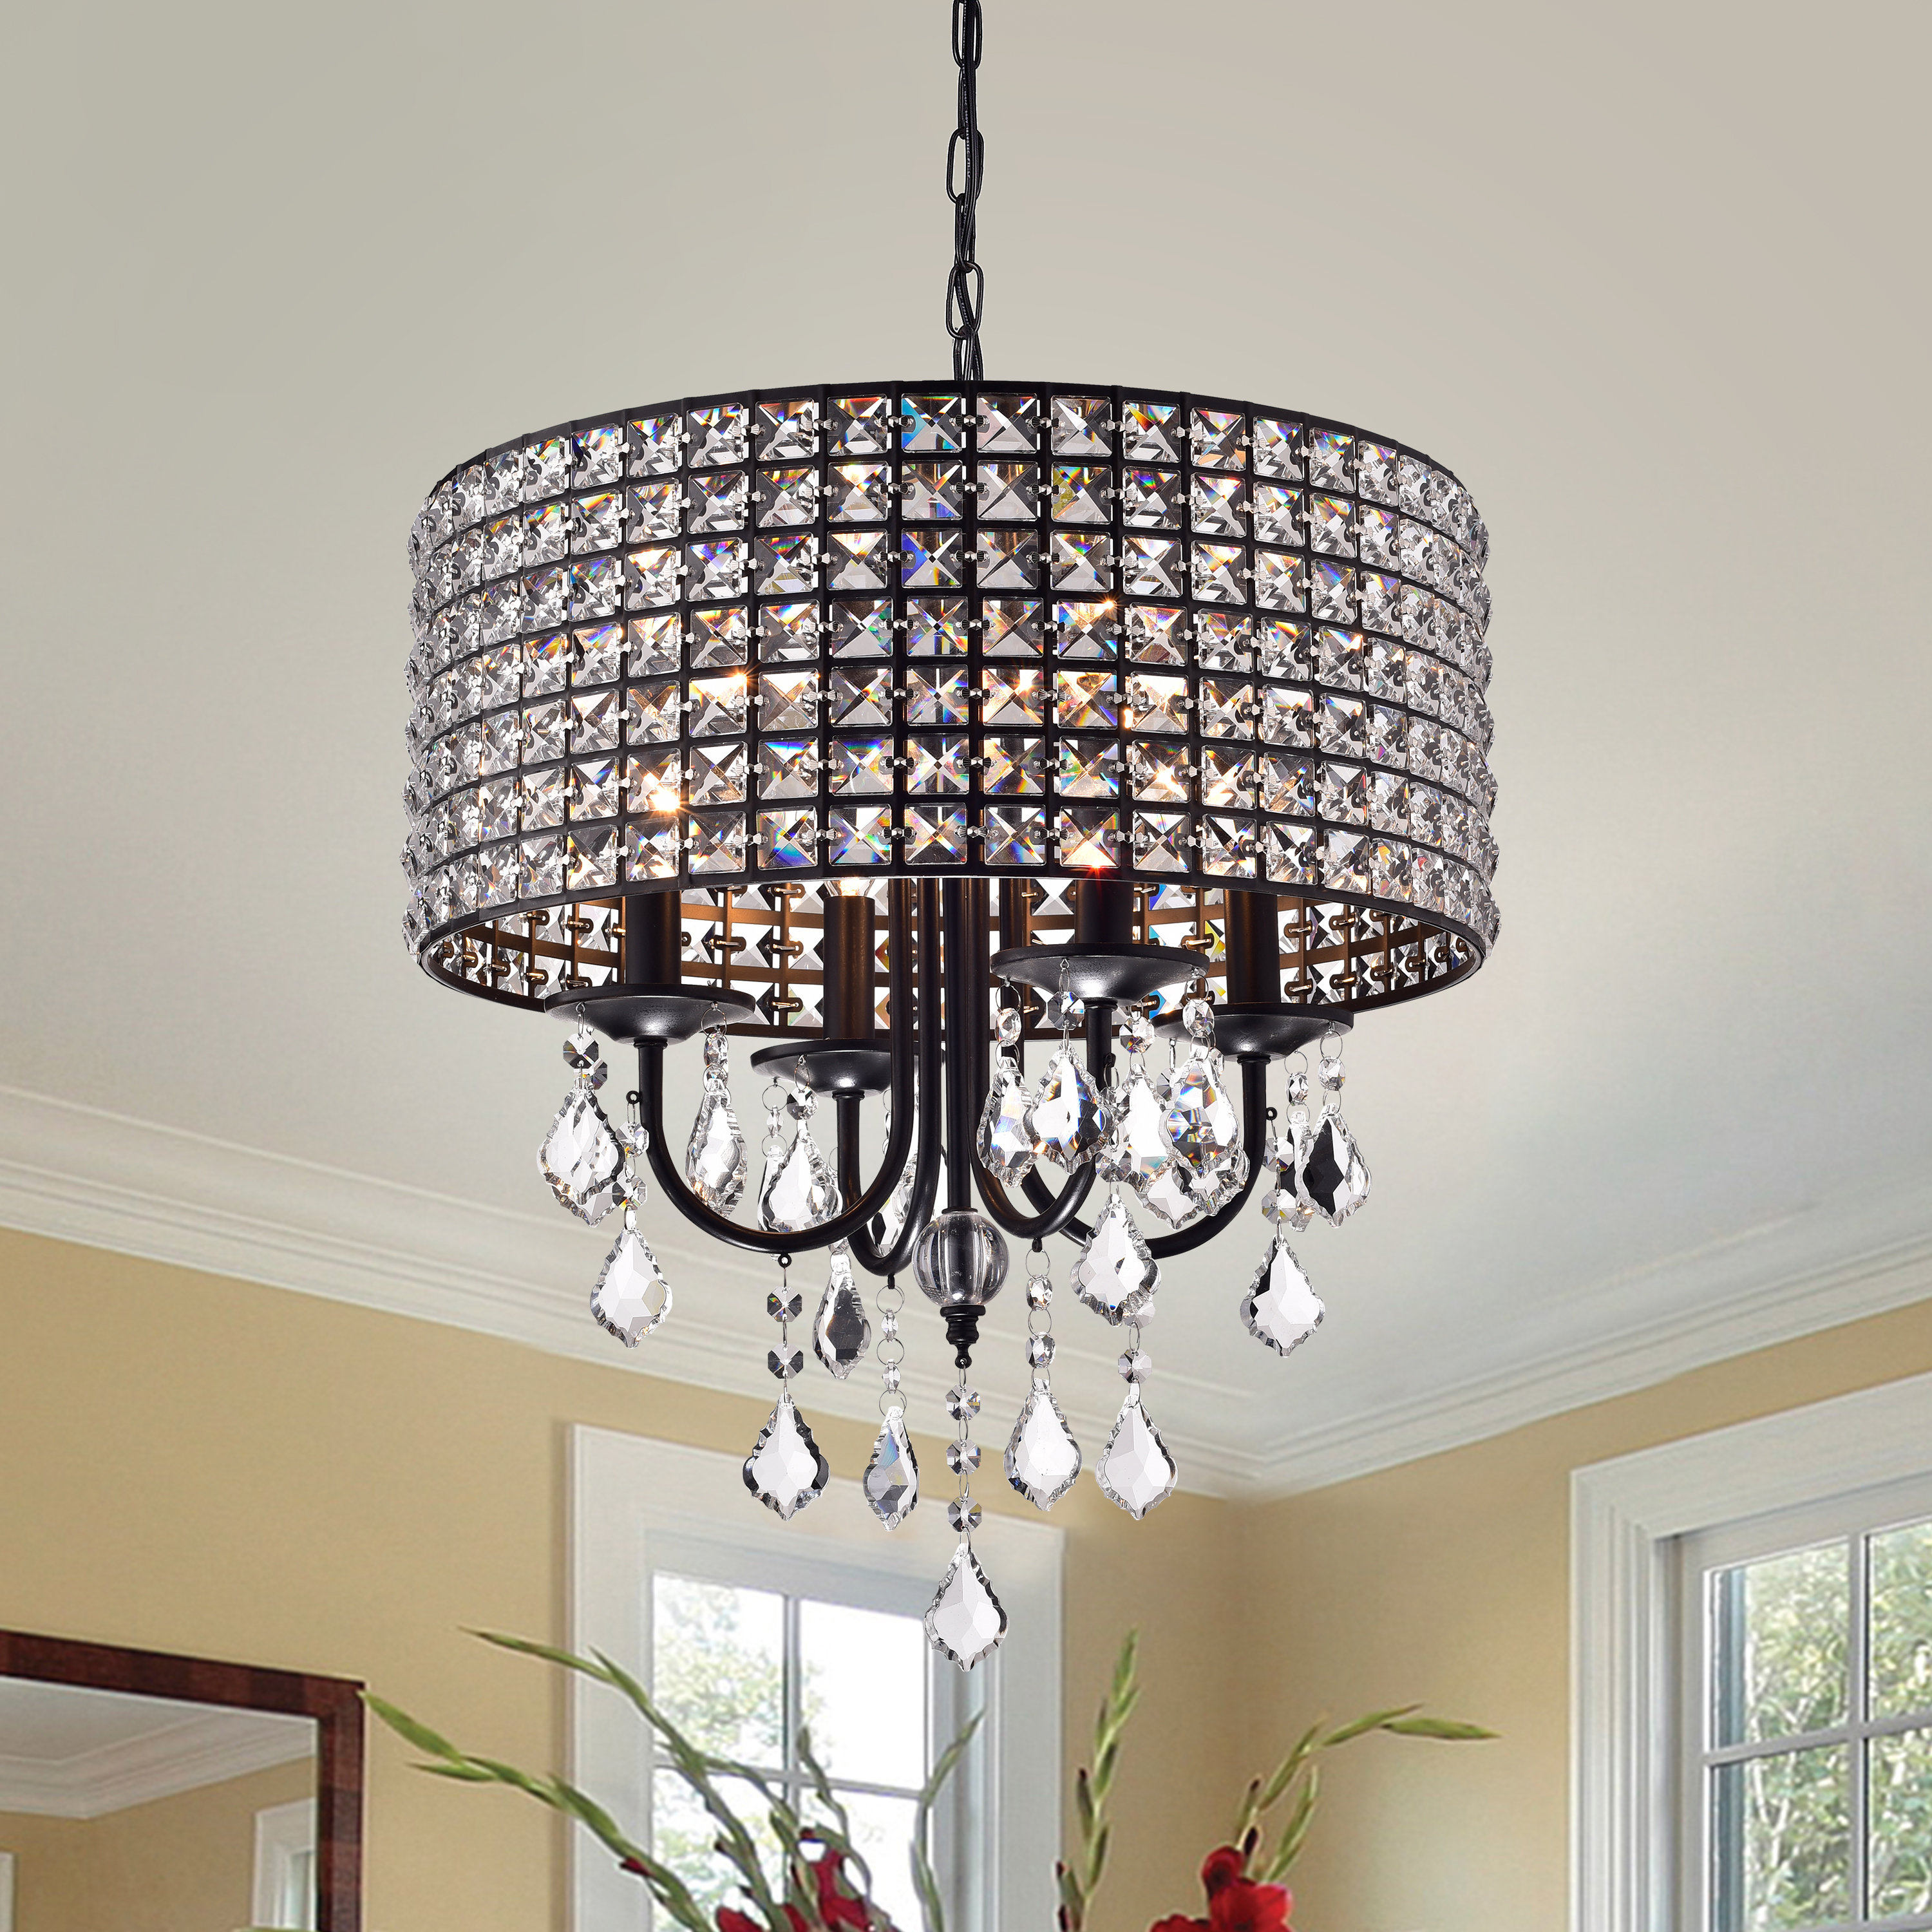 Albano 4 Light Crystal Chandelier With Benedetto 5 Light Crystal Chandeliers (View 6 of 30)